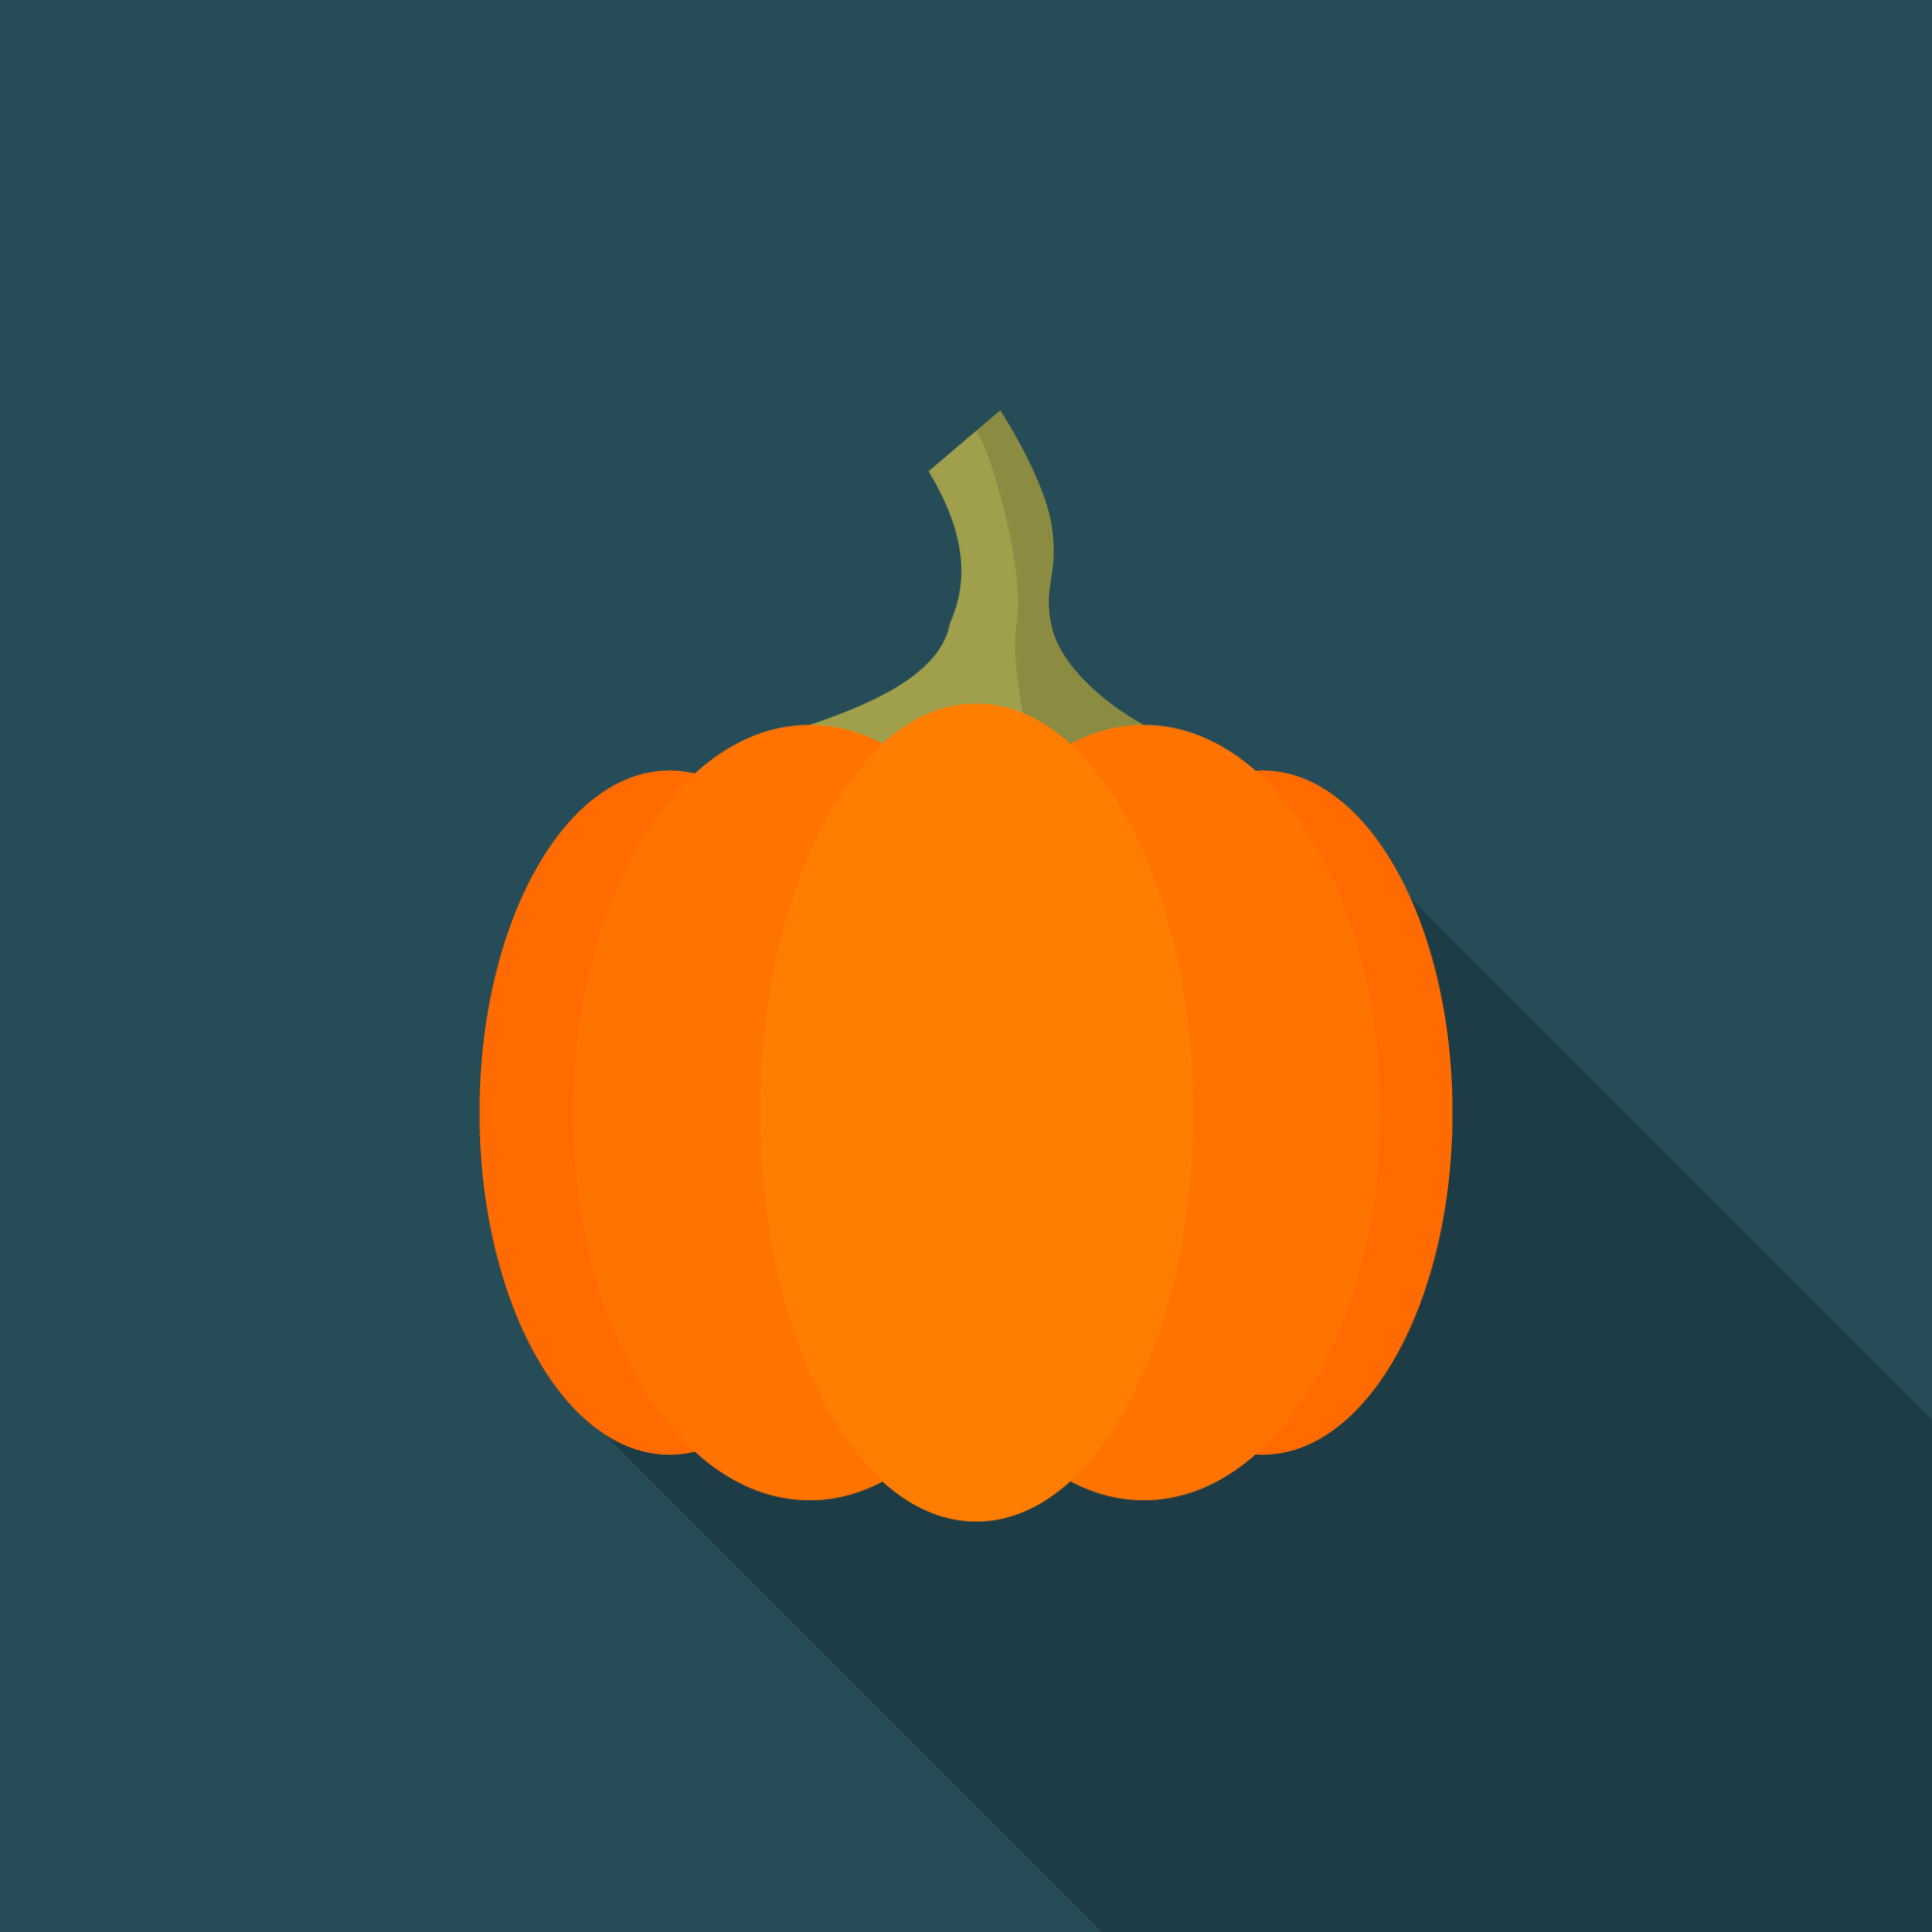 jason-b-graham-pumpkin-icon-264c57-featured-image